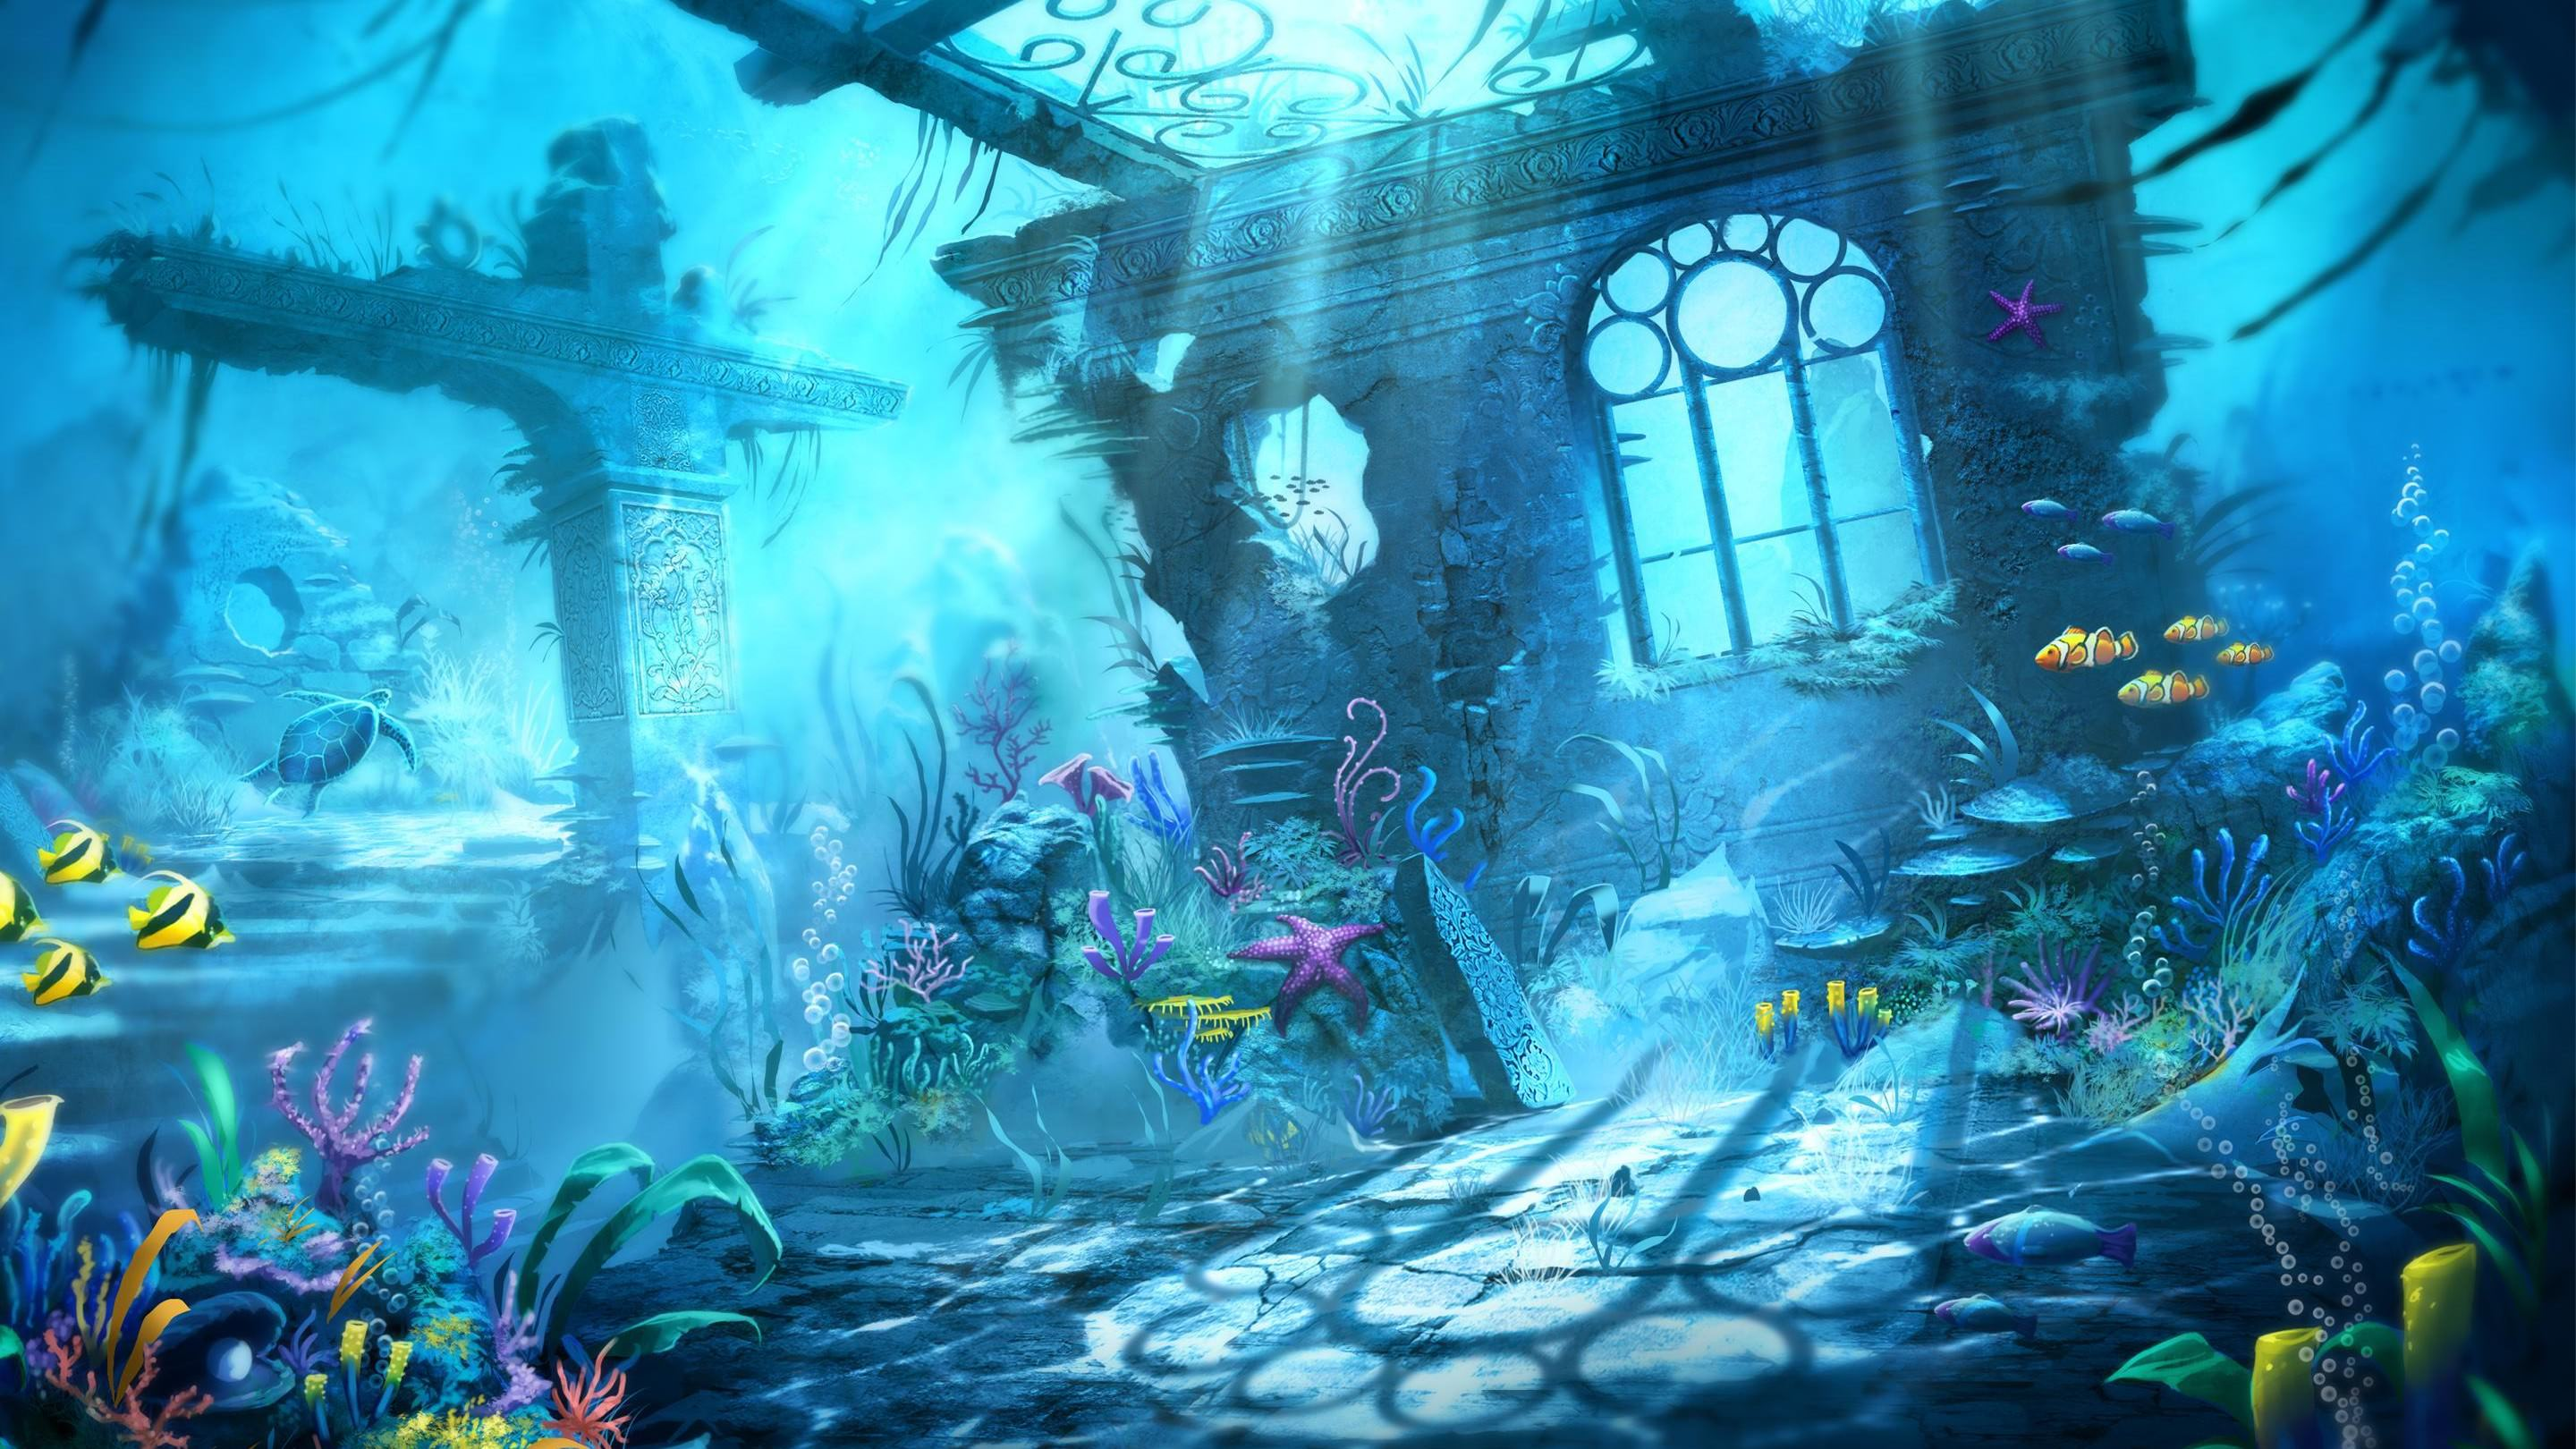 trine underwater background